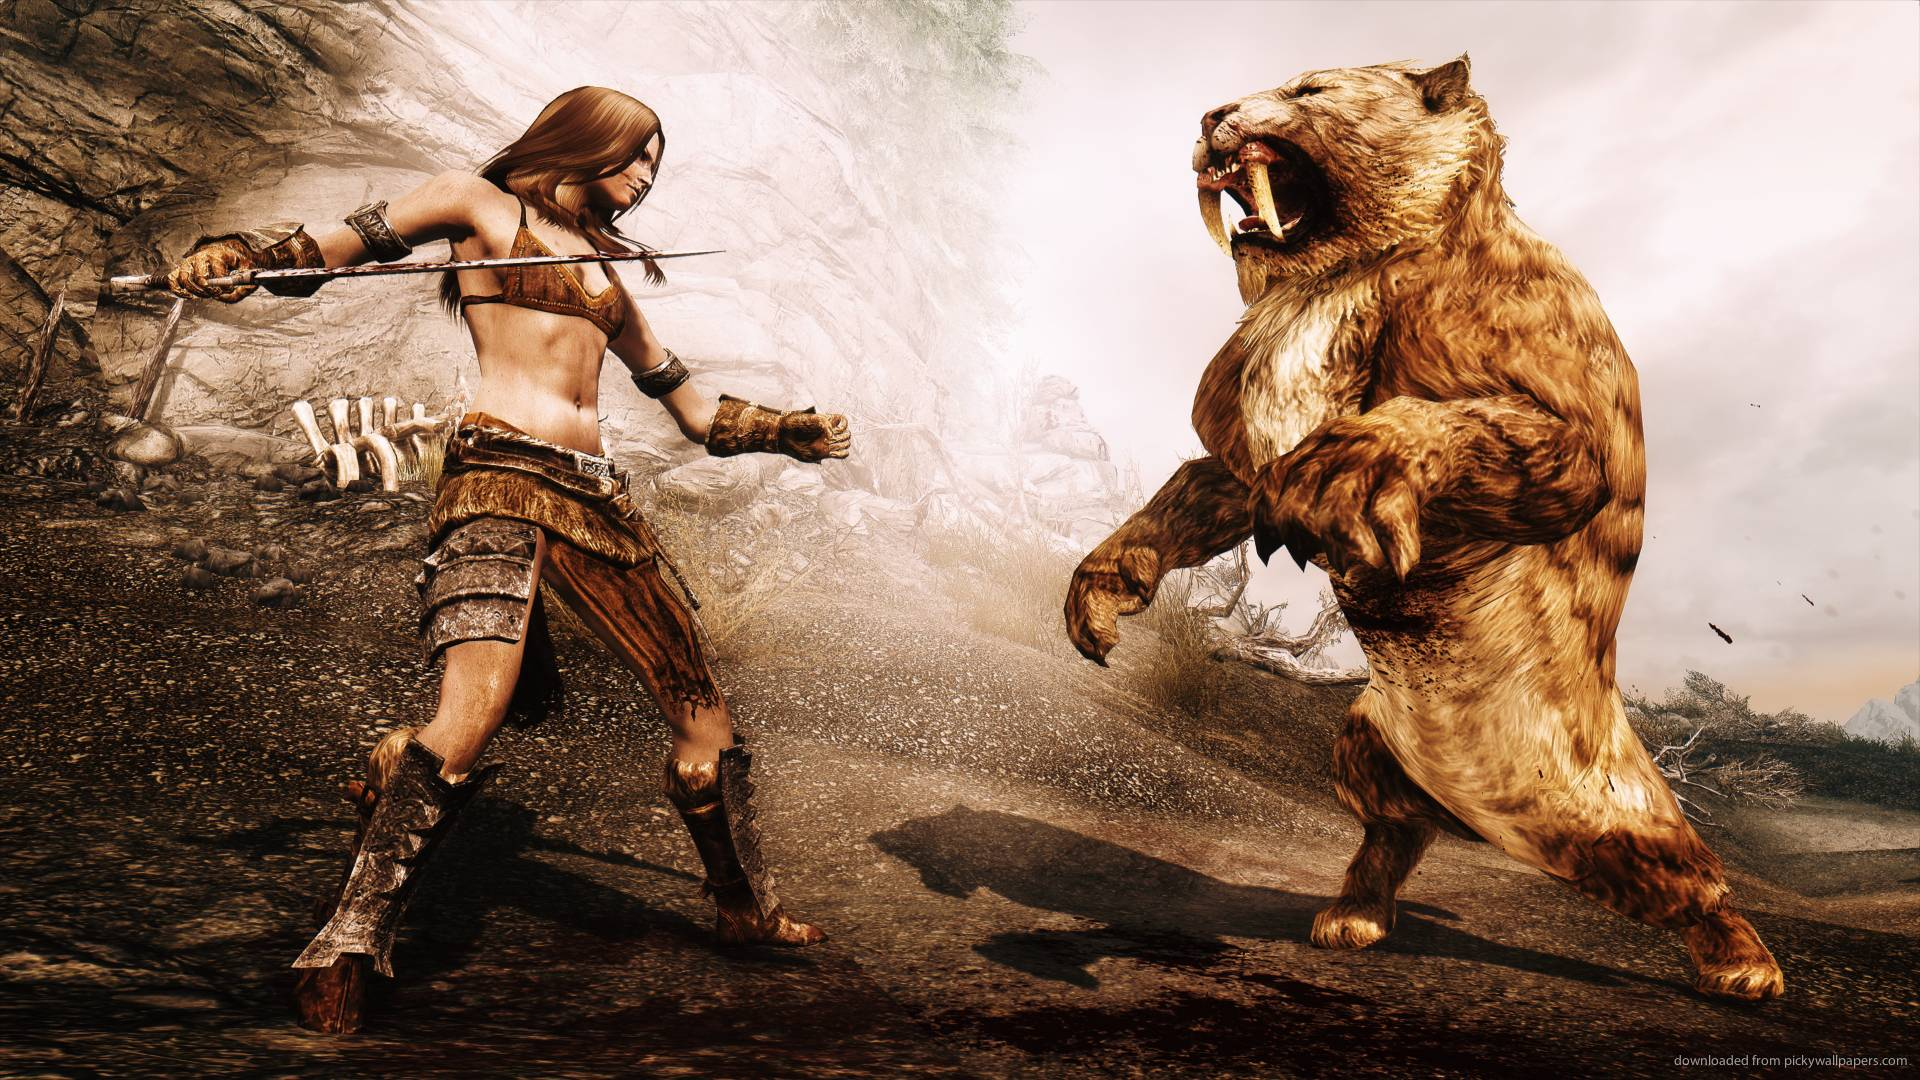 Skyrim Fight With A Sabre Tooth Tiger Wallpapers For iPad